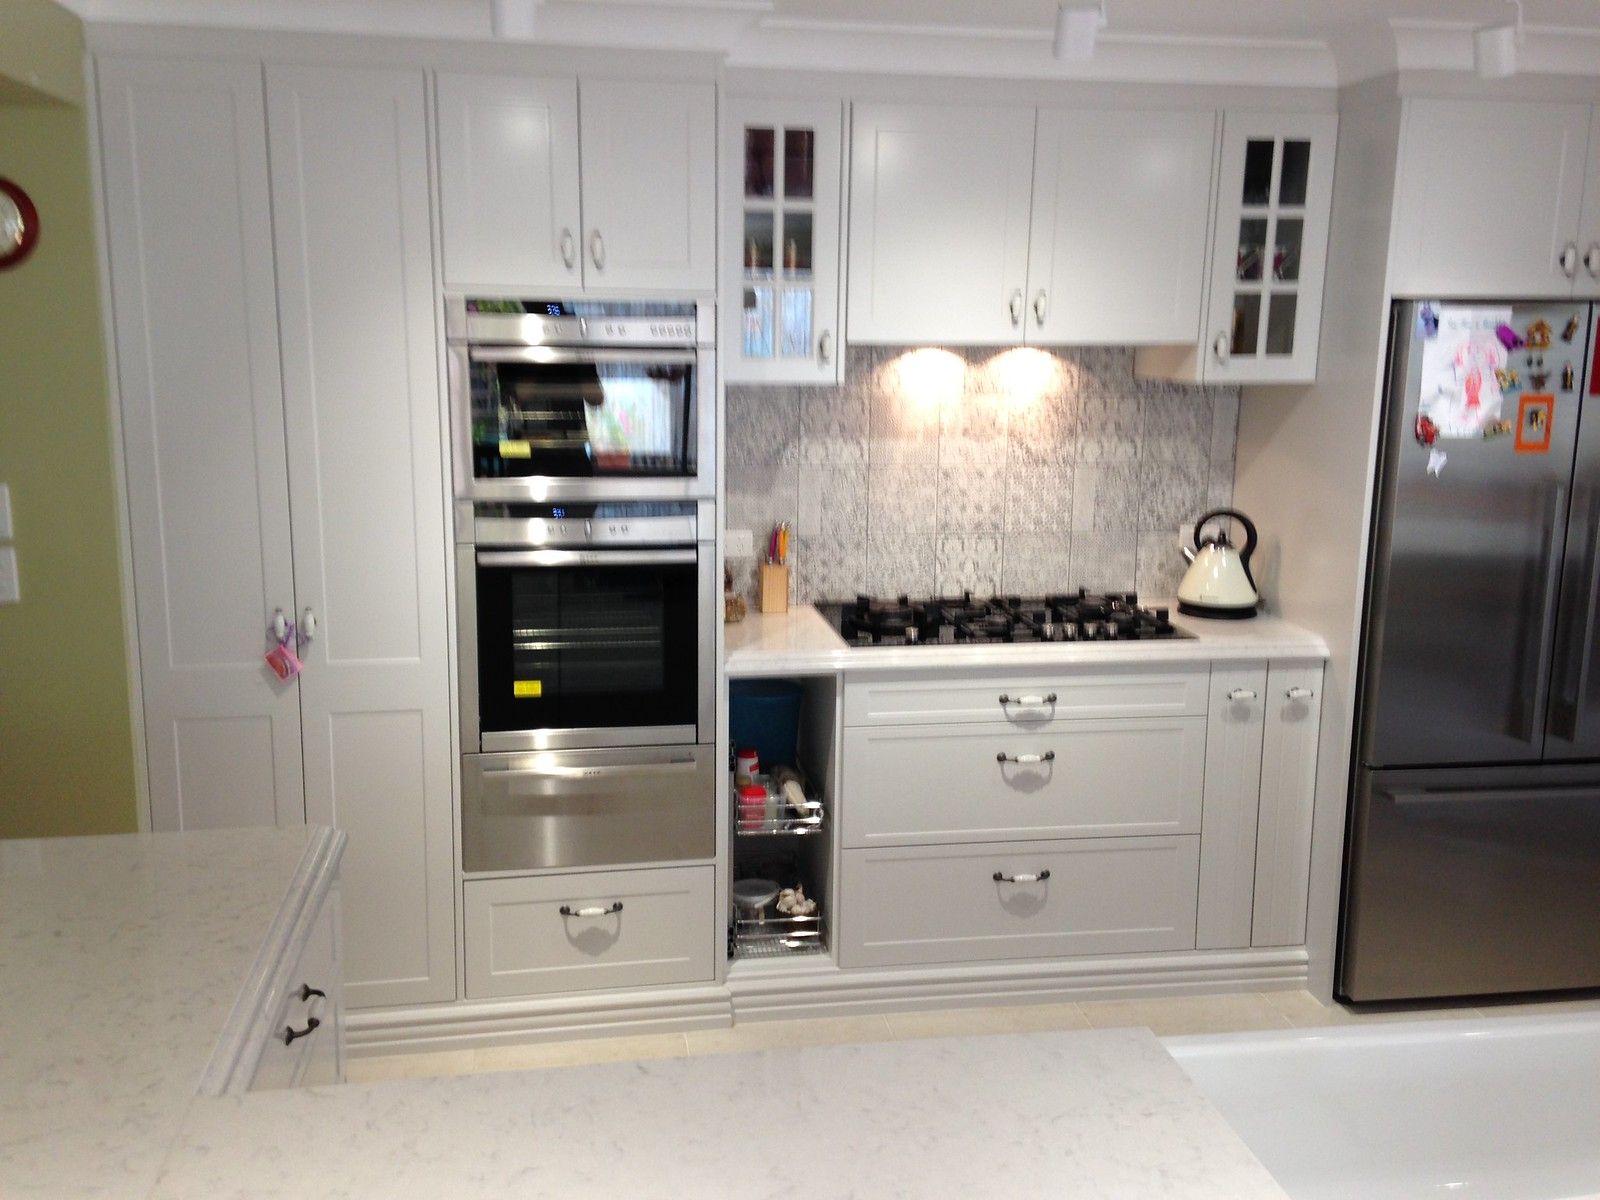 Exclusiv Kitchens Bayside serves Ormitson QLD